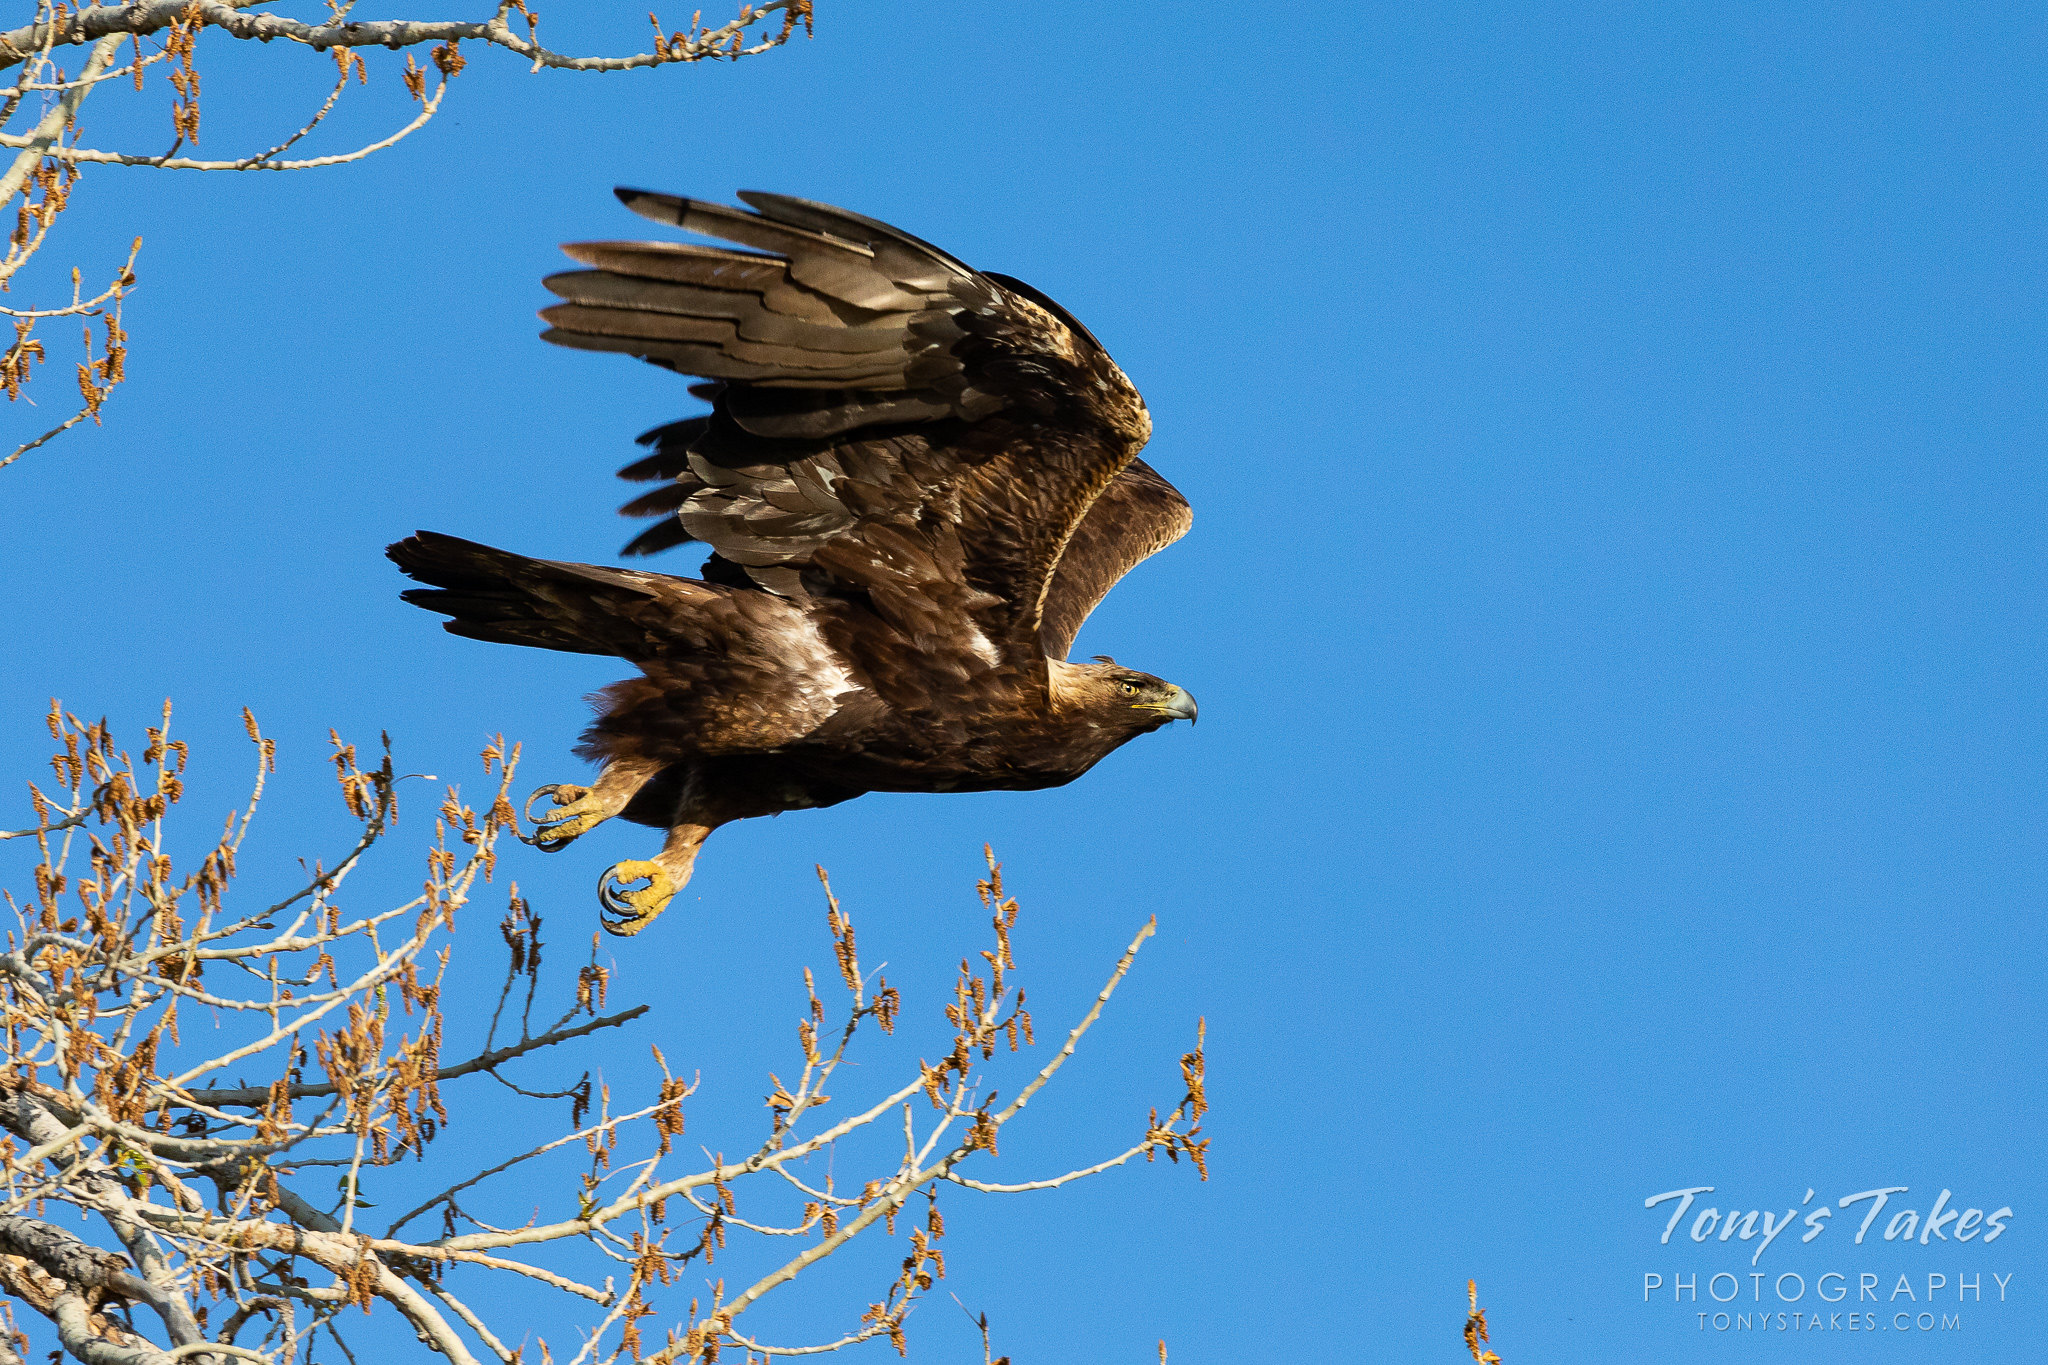 A male golden eagle takes to the skies in Boulder County, Colorado. (© Tony's Takes)